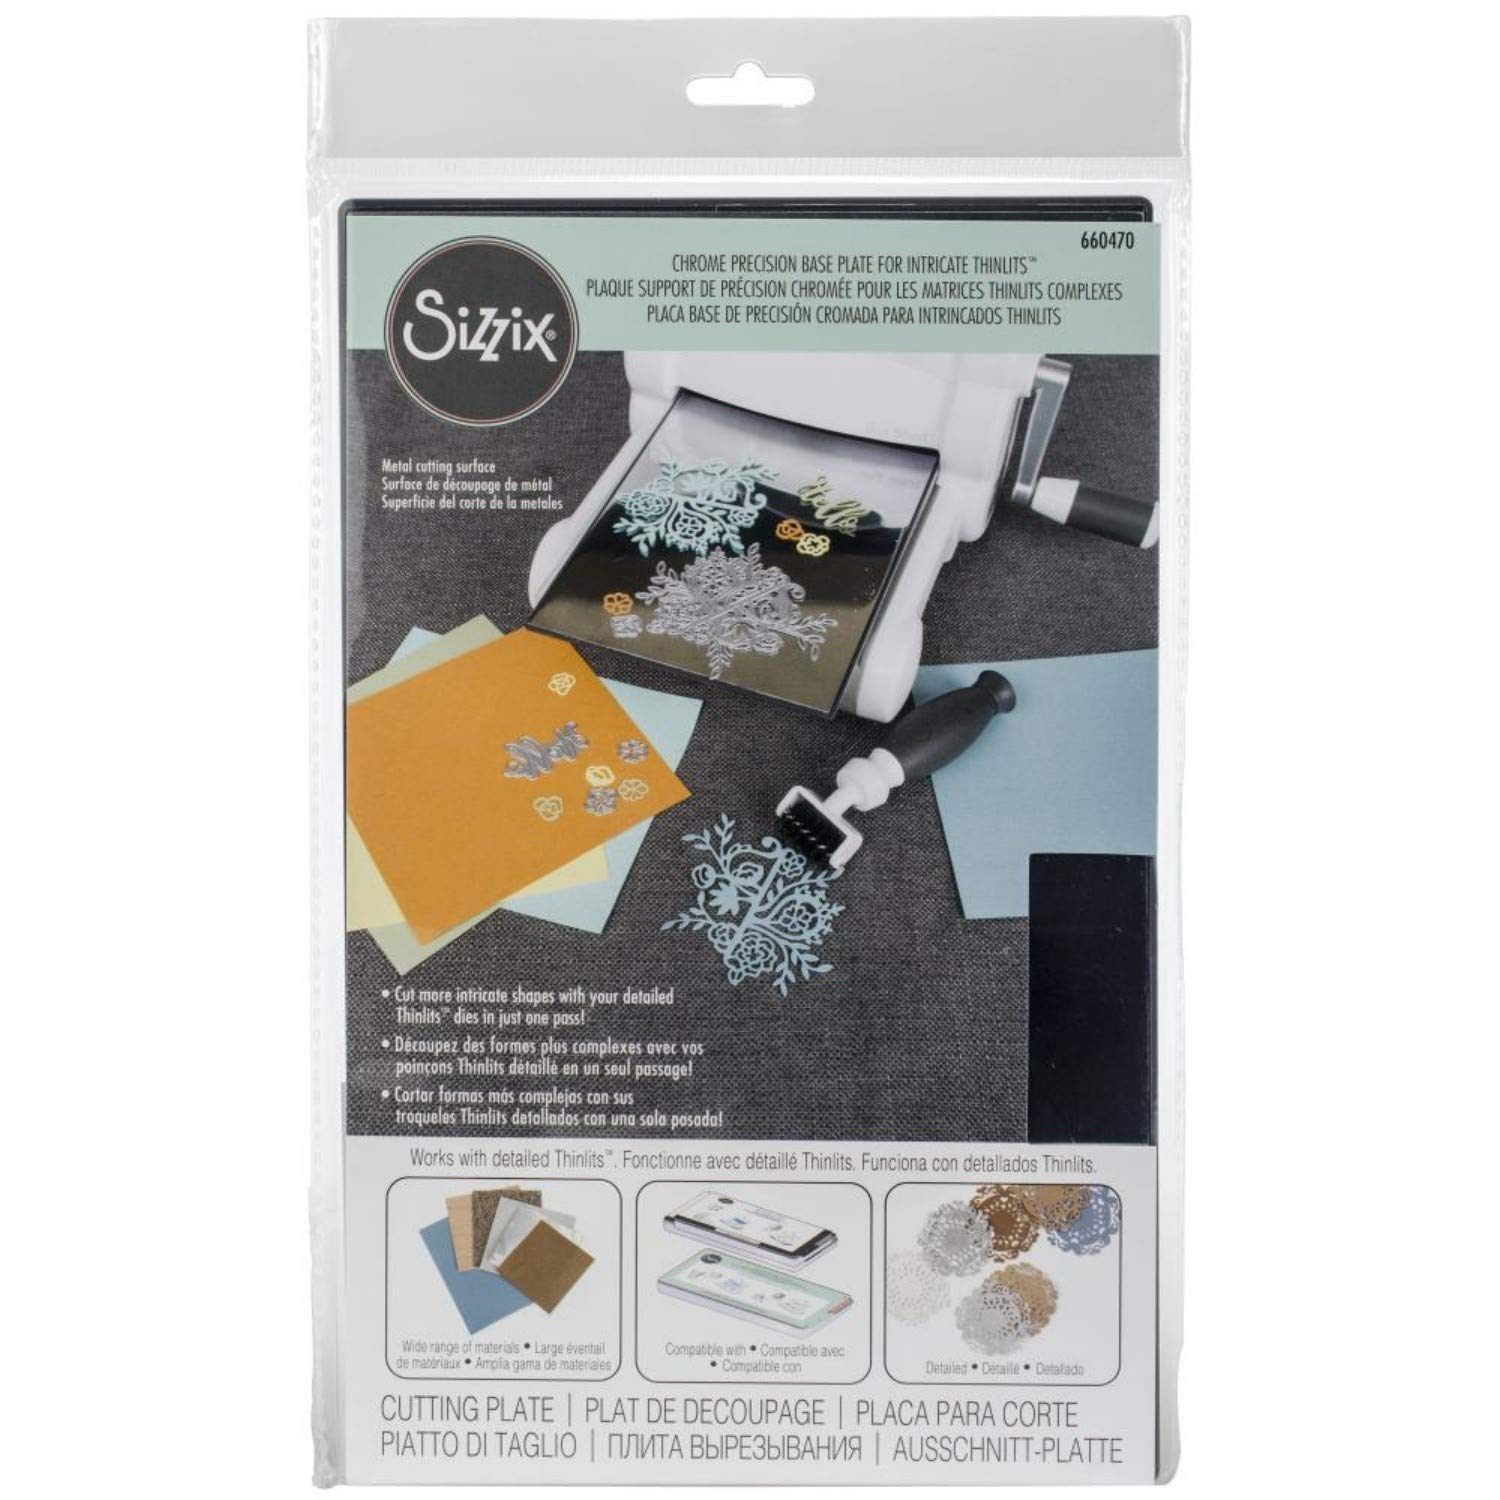 Sizzix Accessory - Chrome Precision Base Plate for Intricate Thinlits Dies 4336978958